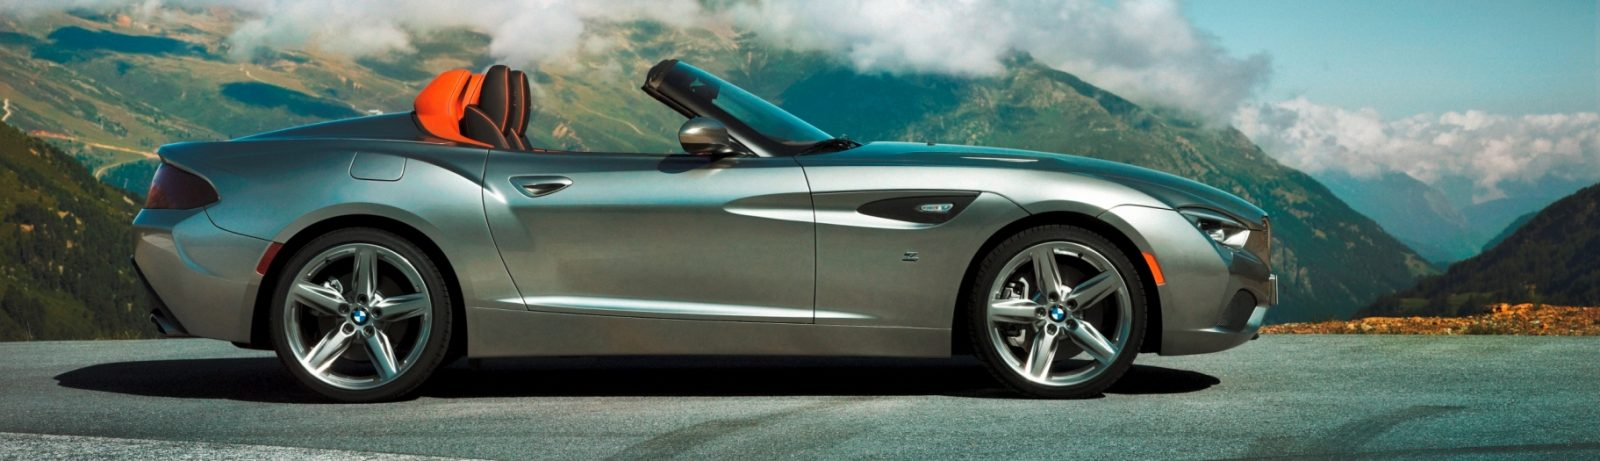 Concept Flashback 2012 Bmw Zagato Z4 Roadster And Coupe 46